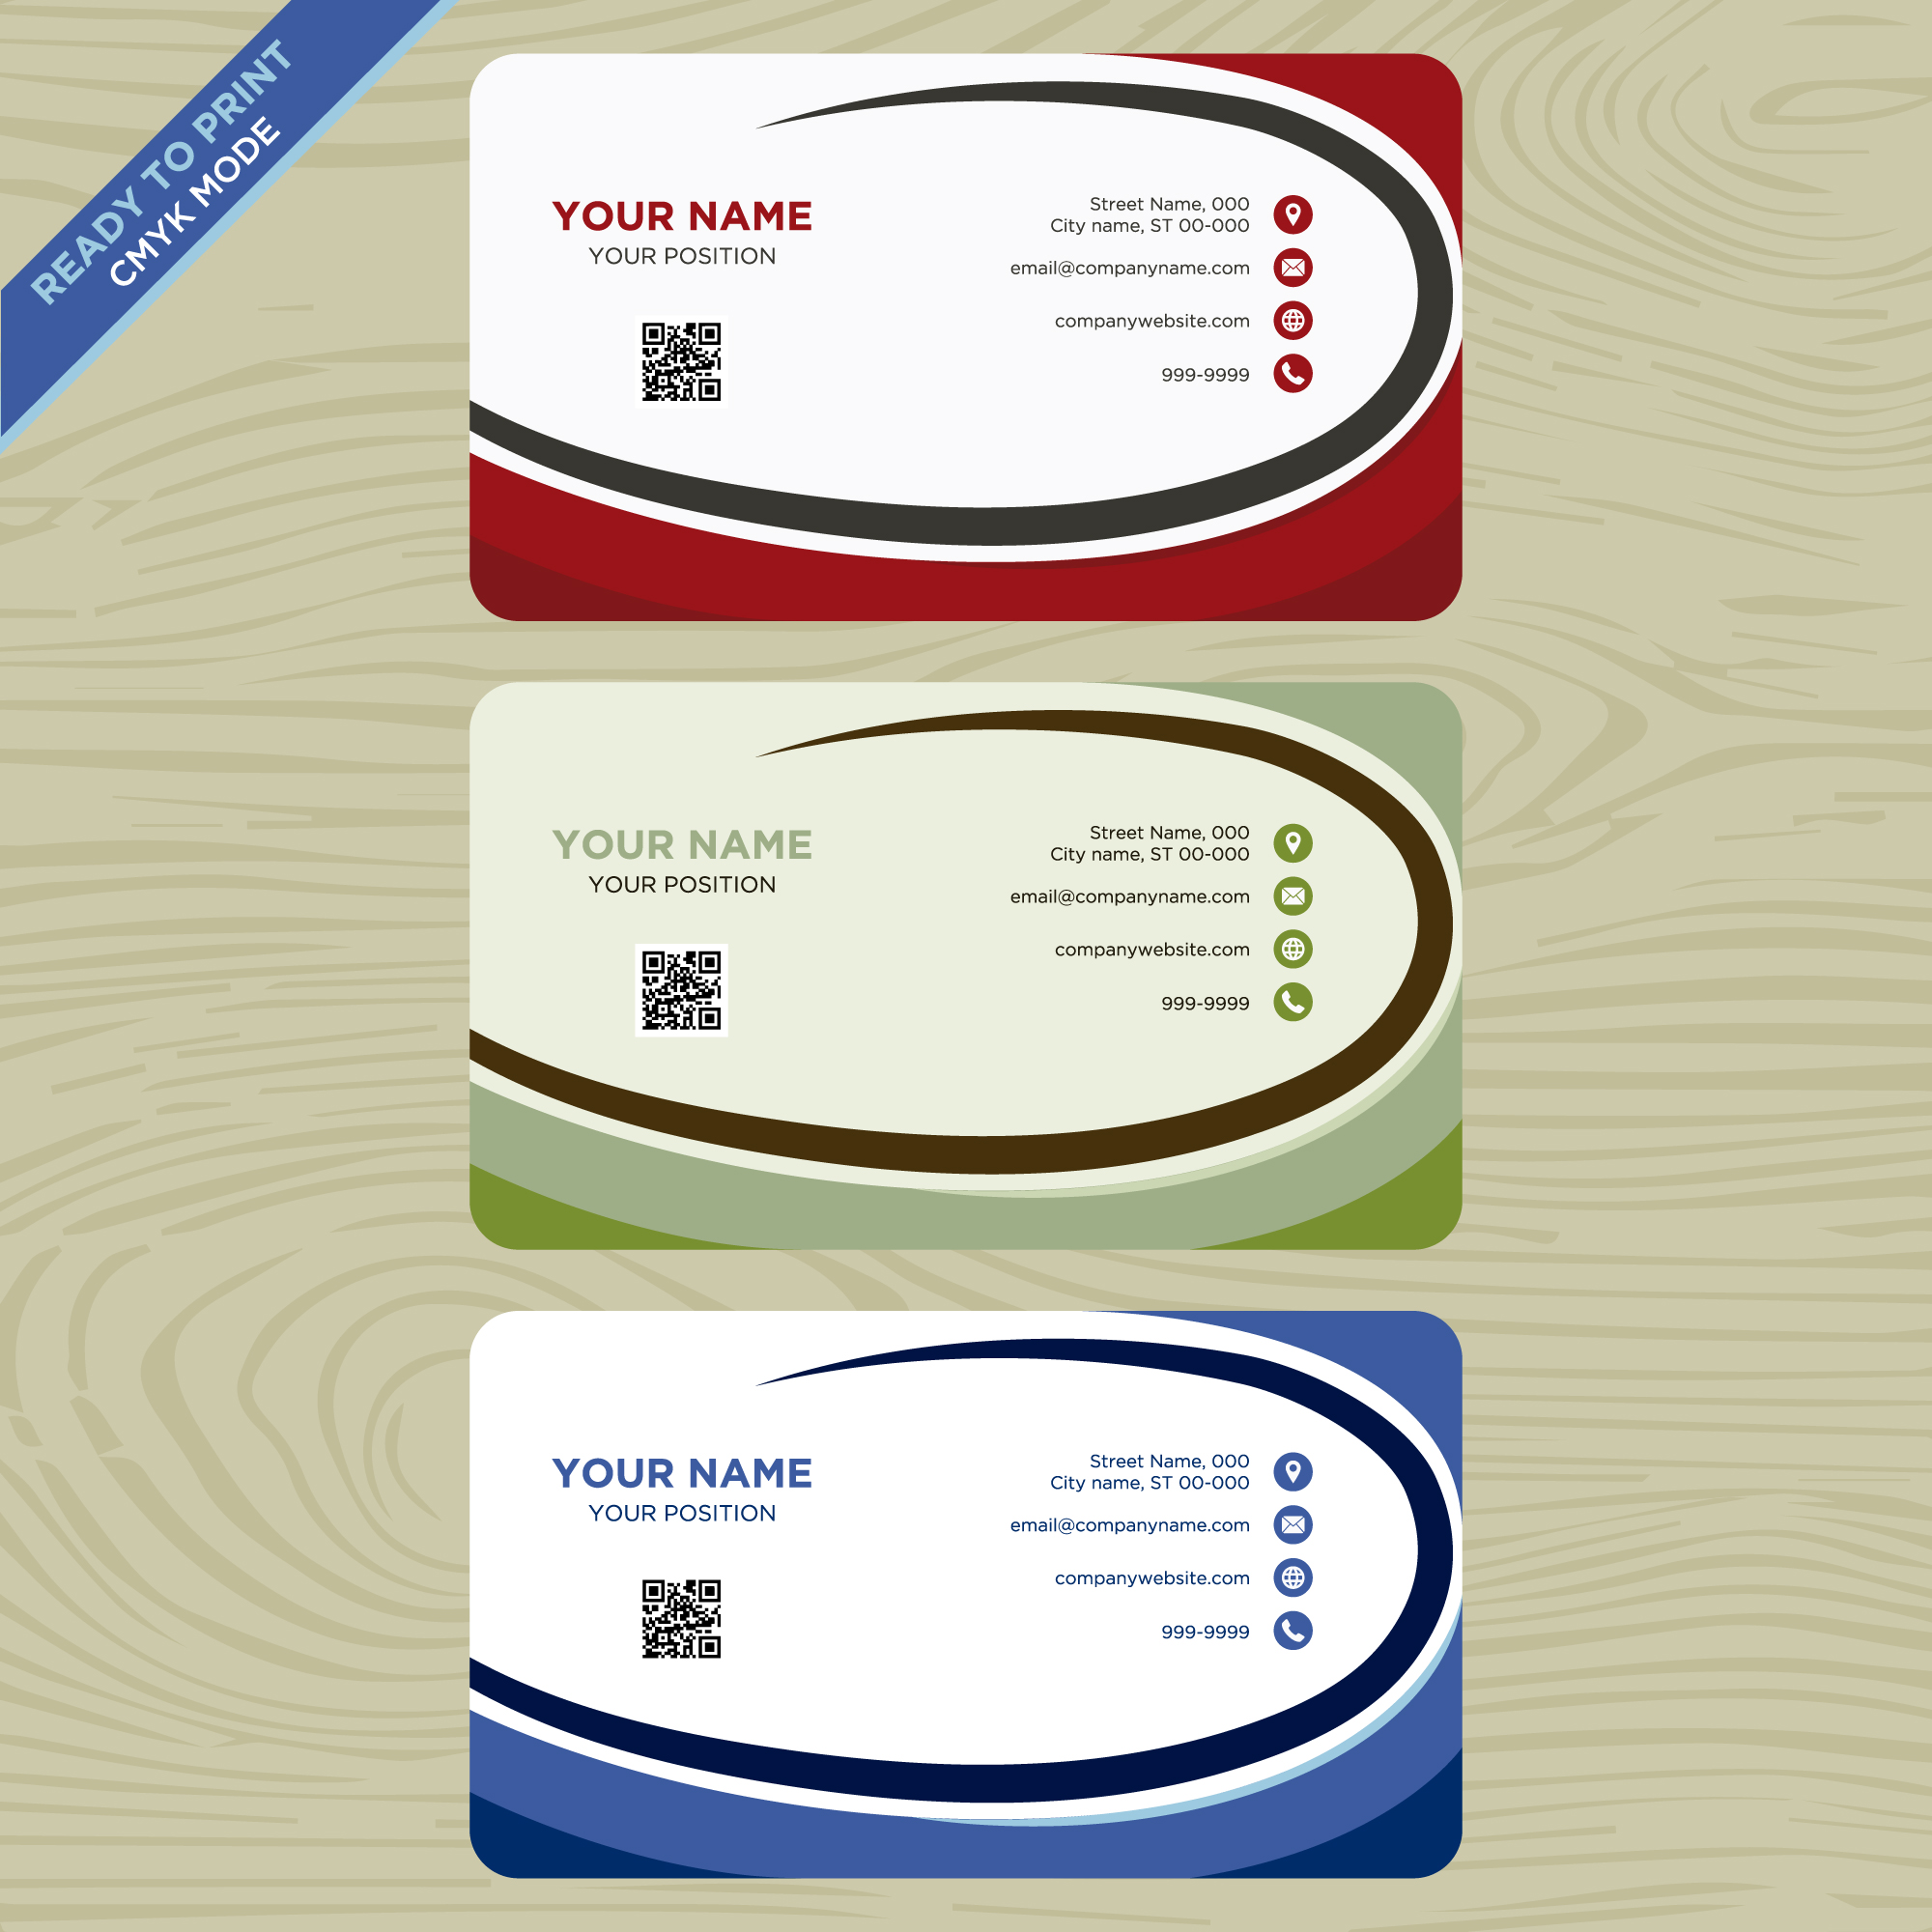 Red, green and blue business card collection